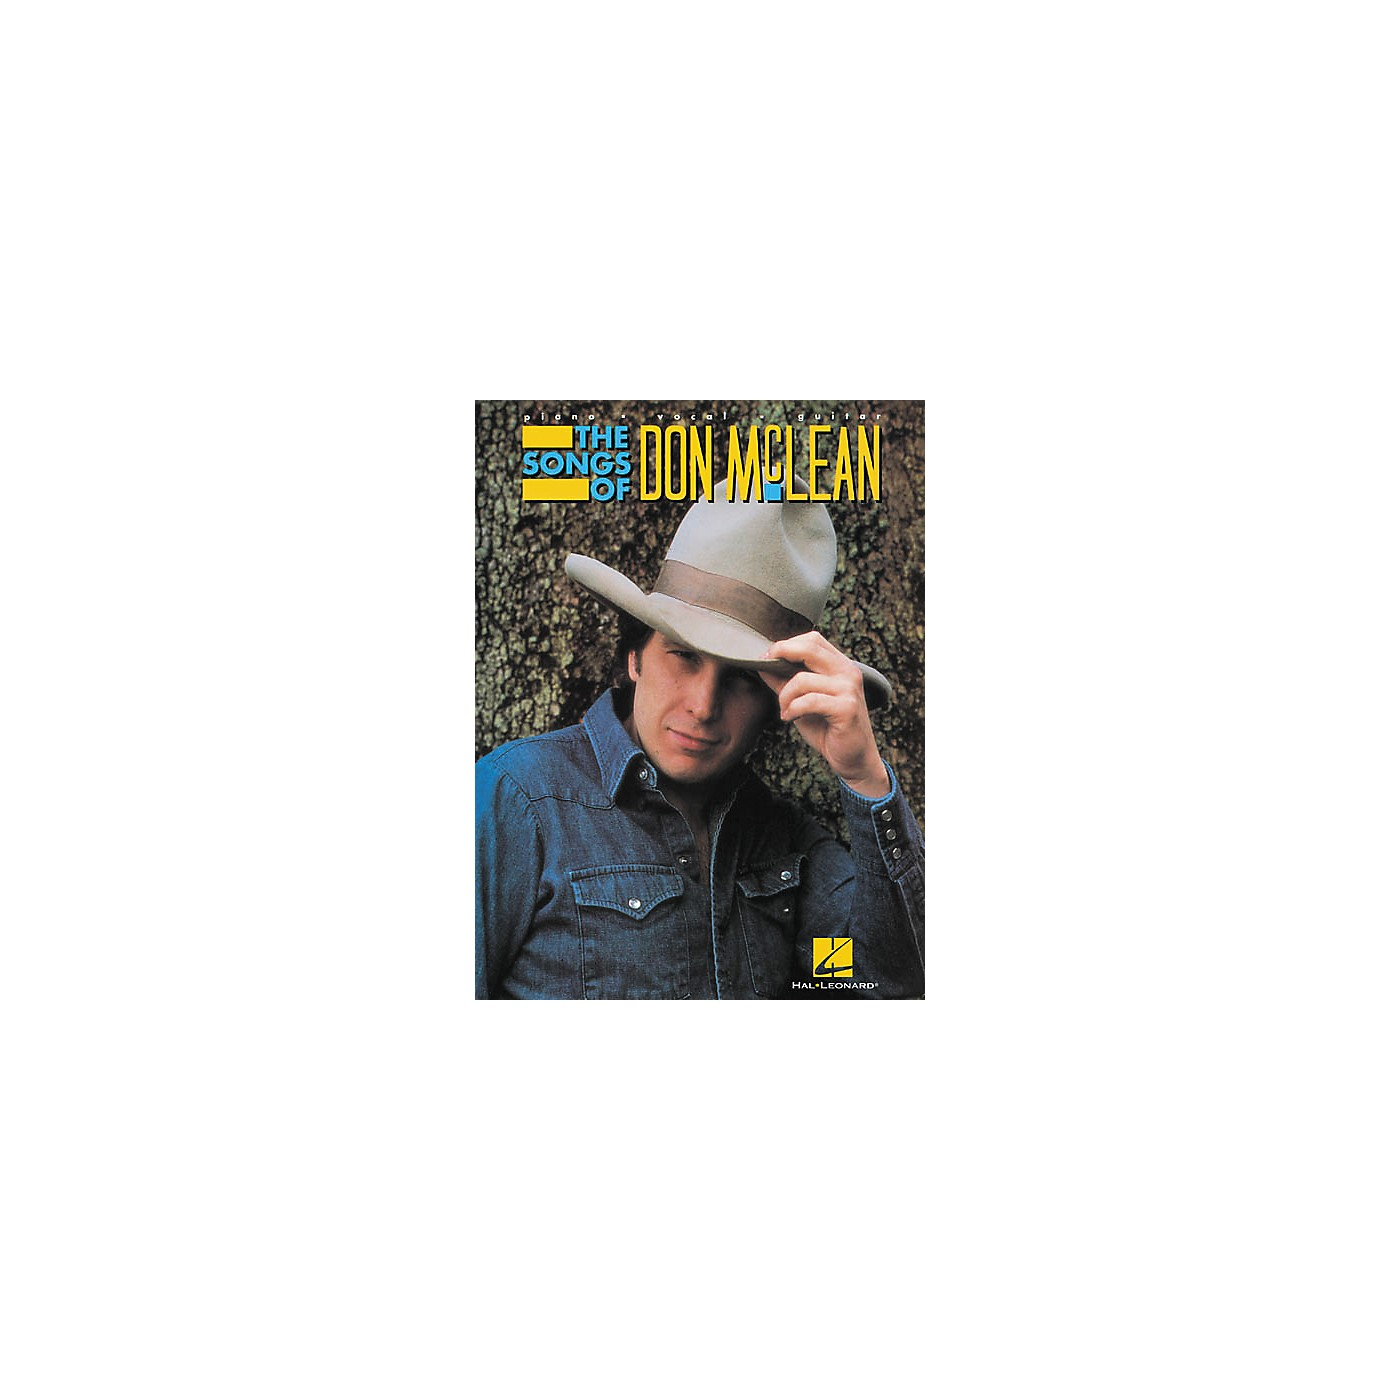 Hal Leonard The Songs of Don McLean Piano, Vocal, Guitar Songbook thumbnail